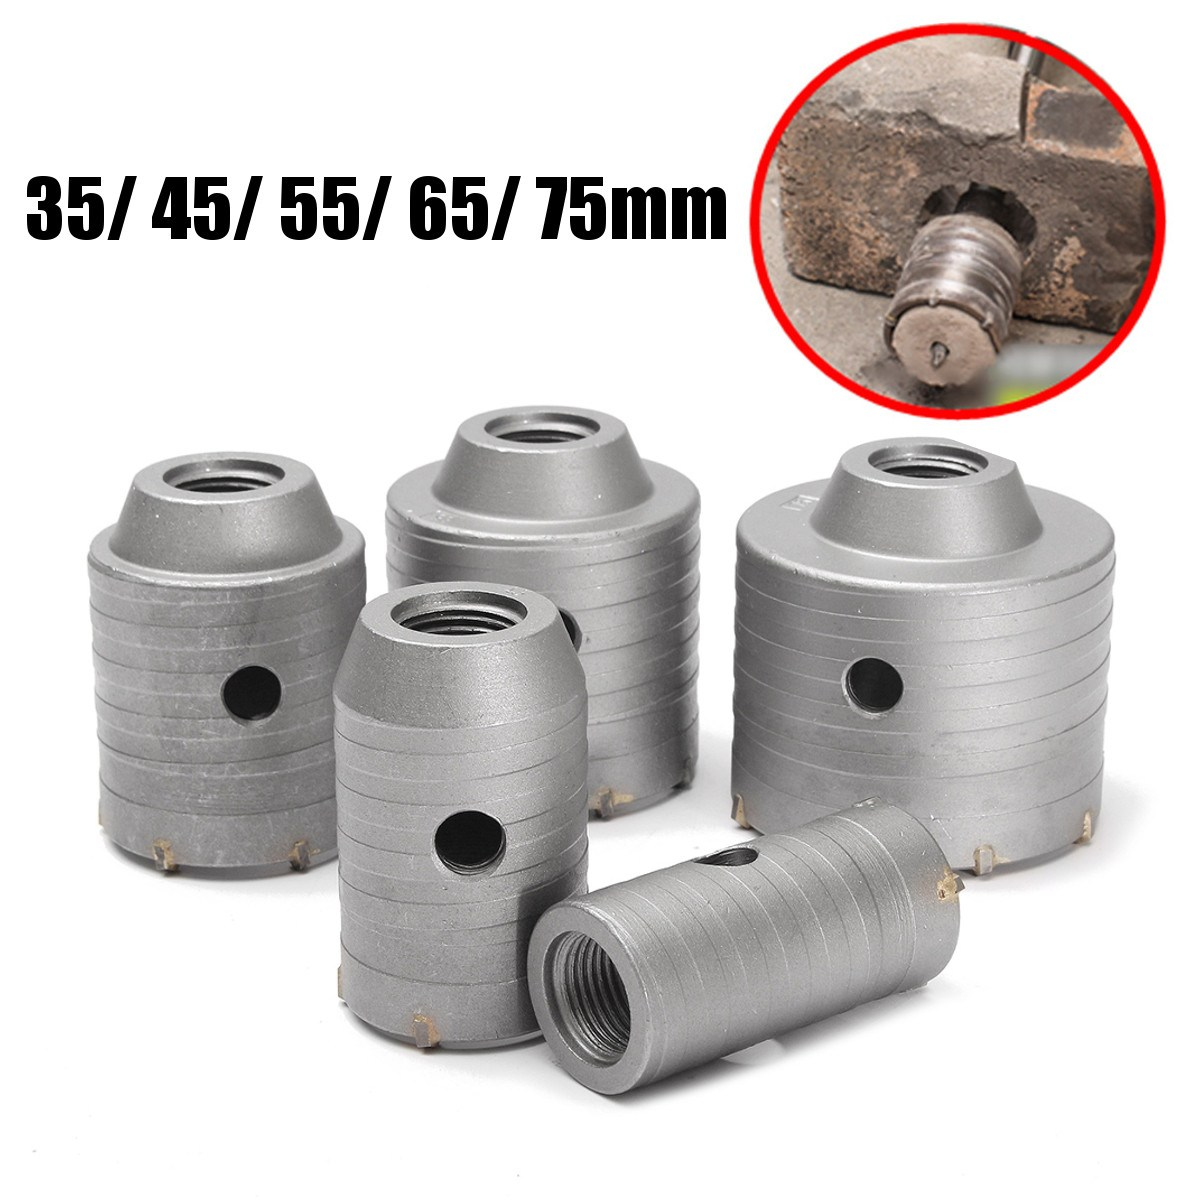 High Quality 35-75mm Drill Bit Coated Hole Saw Tooth Hole Cutter Metal Brick For Brick Concrete Walls Air Conditioning Openings